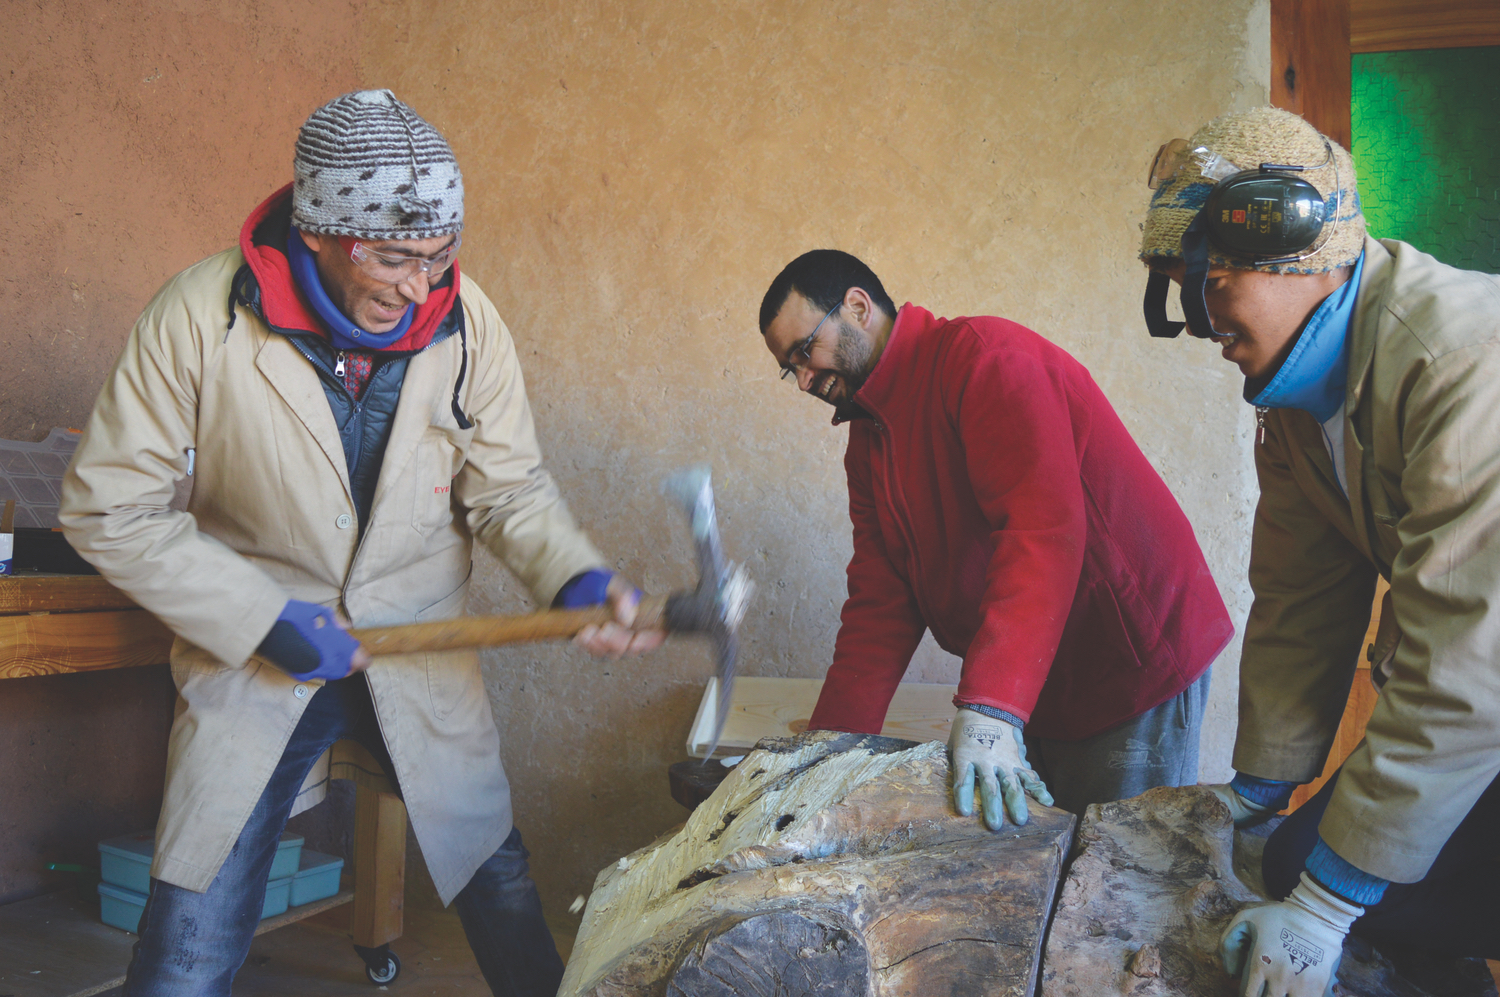 Mohamed, Abdelkbir and Mouad shaping reclaimed timber for the giant duck carving; Photo by David Bult